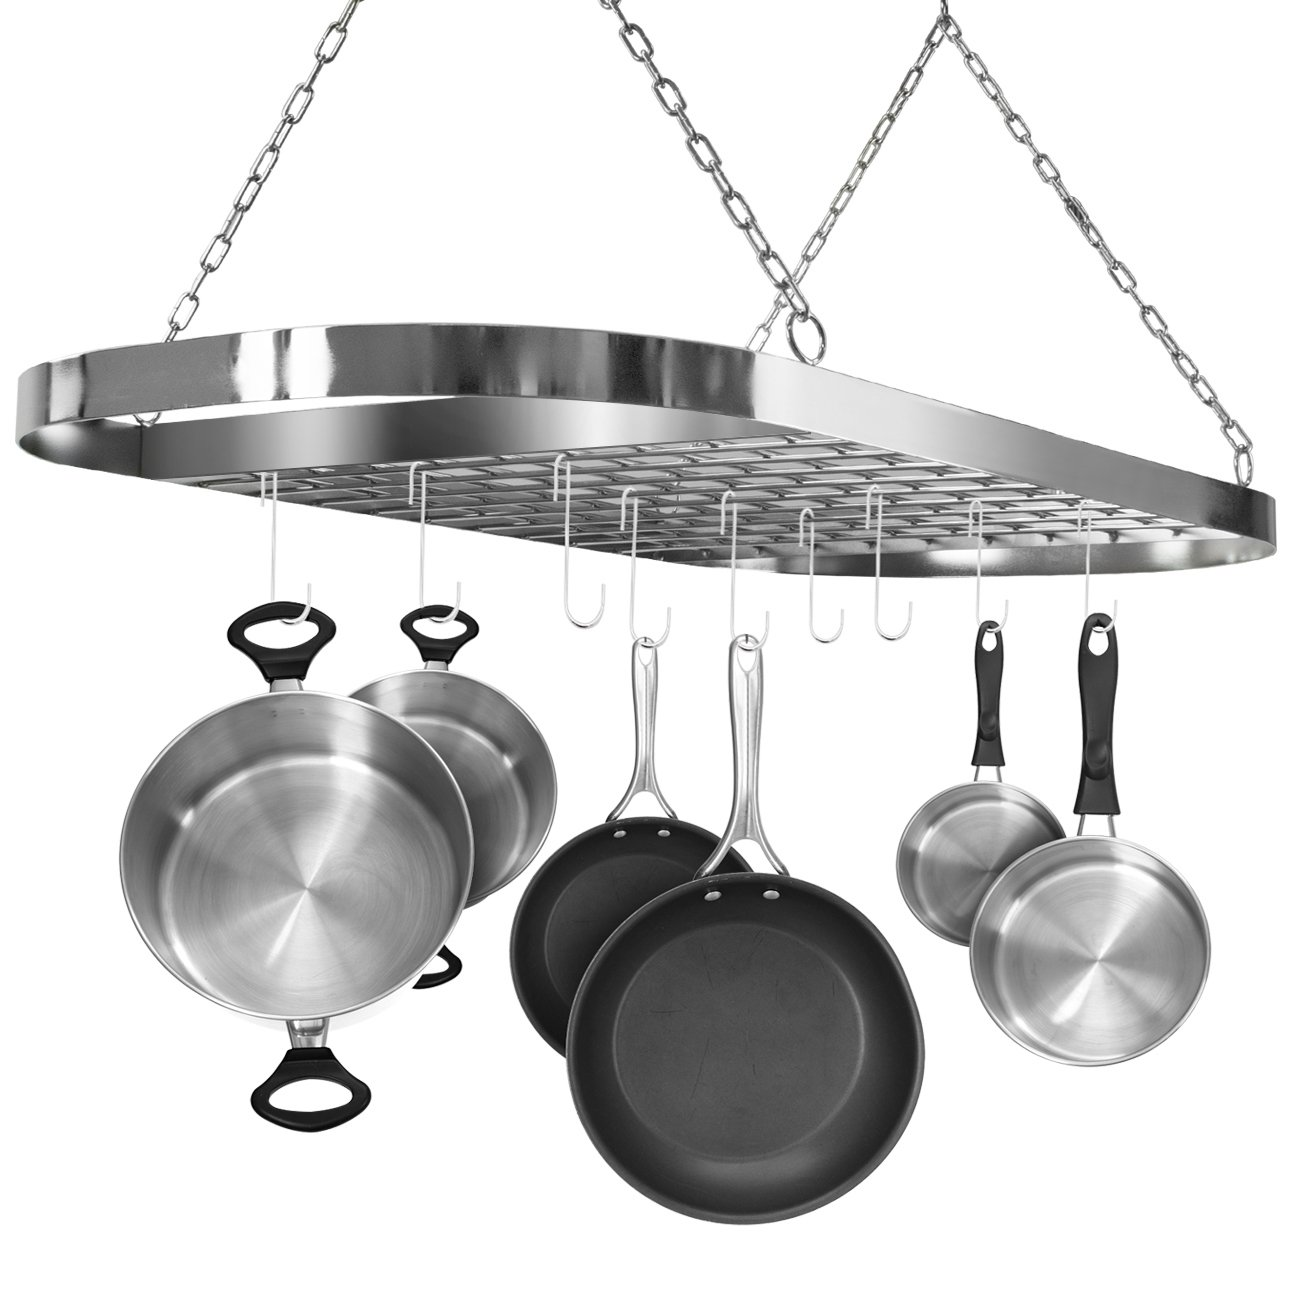 563df6a9eb5 Sorbus Pot and Pan Rack for Ceiling with Hooks — Decorative Oval Mounted  Storage Rack — Multi-Purpose Organizer for Home